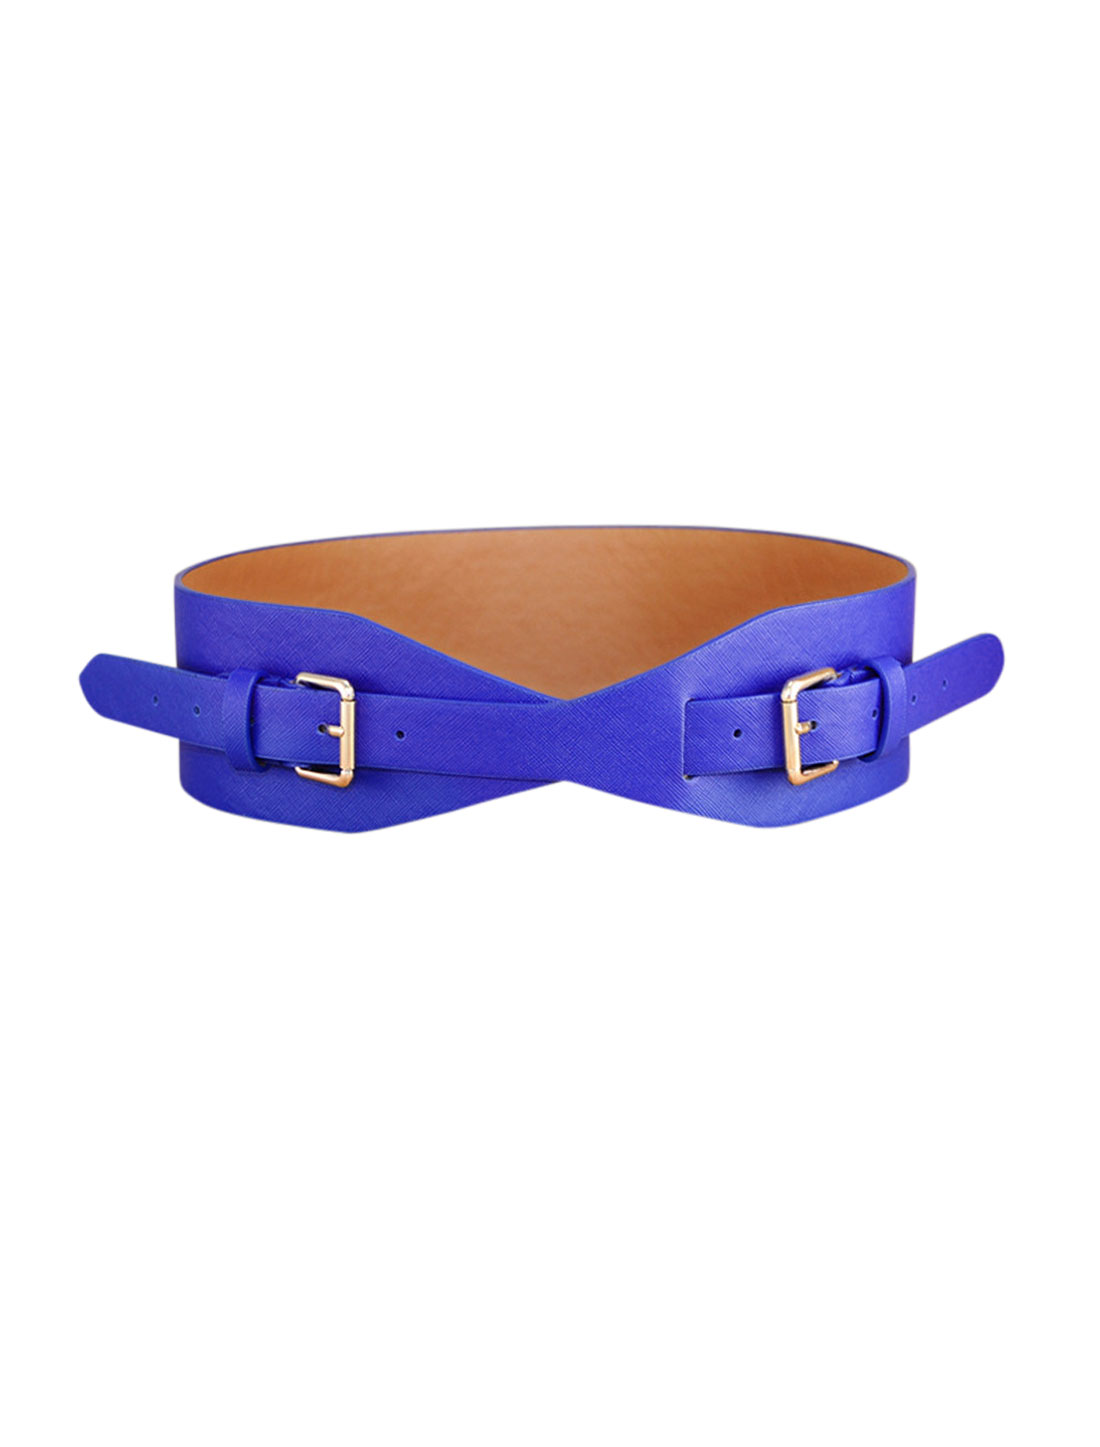 Women Adjustable Wide PU Double Buckle Retro Cinch Belt Blue